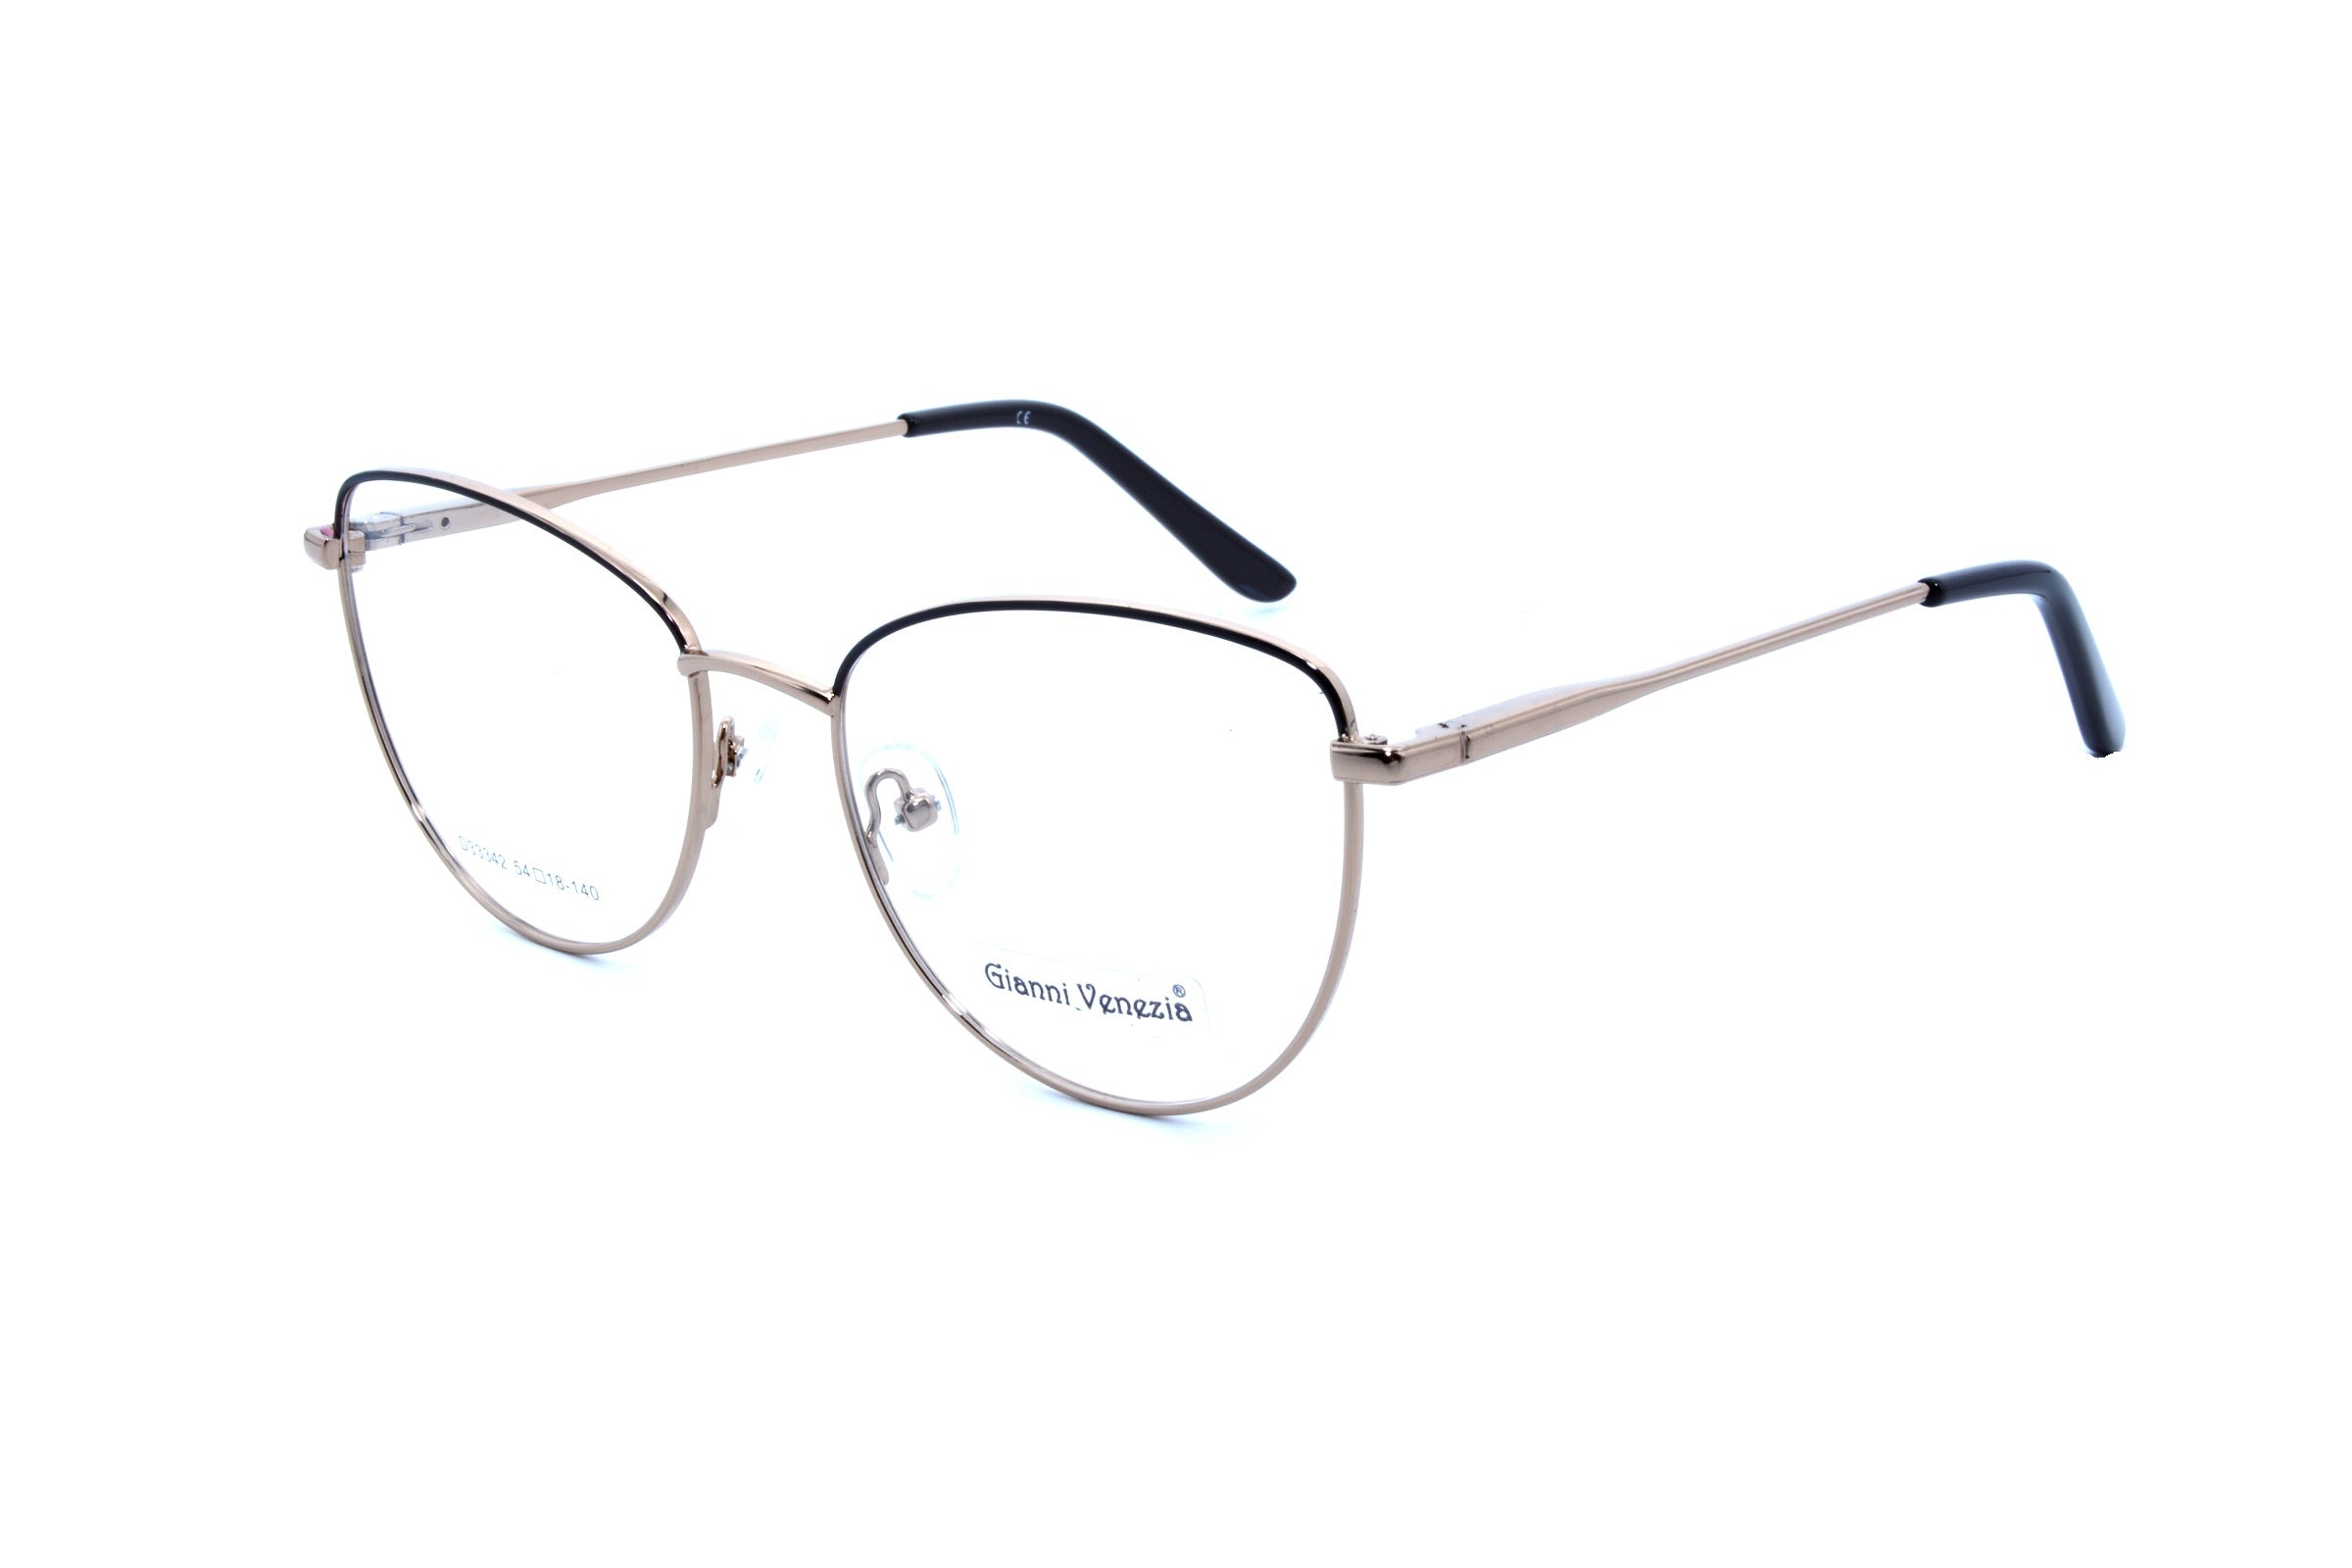 Gianni Venezia eyewear D33342, C6 - Optics Trading